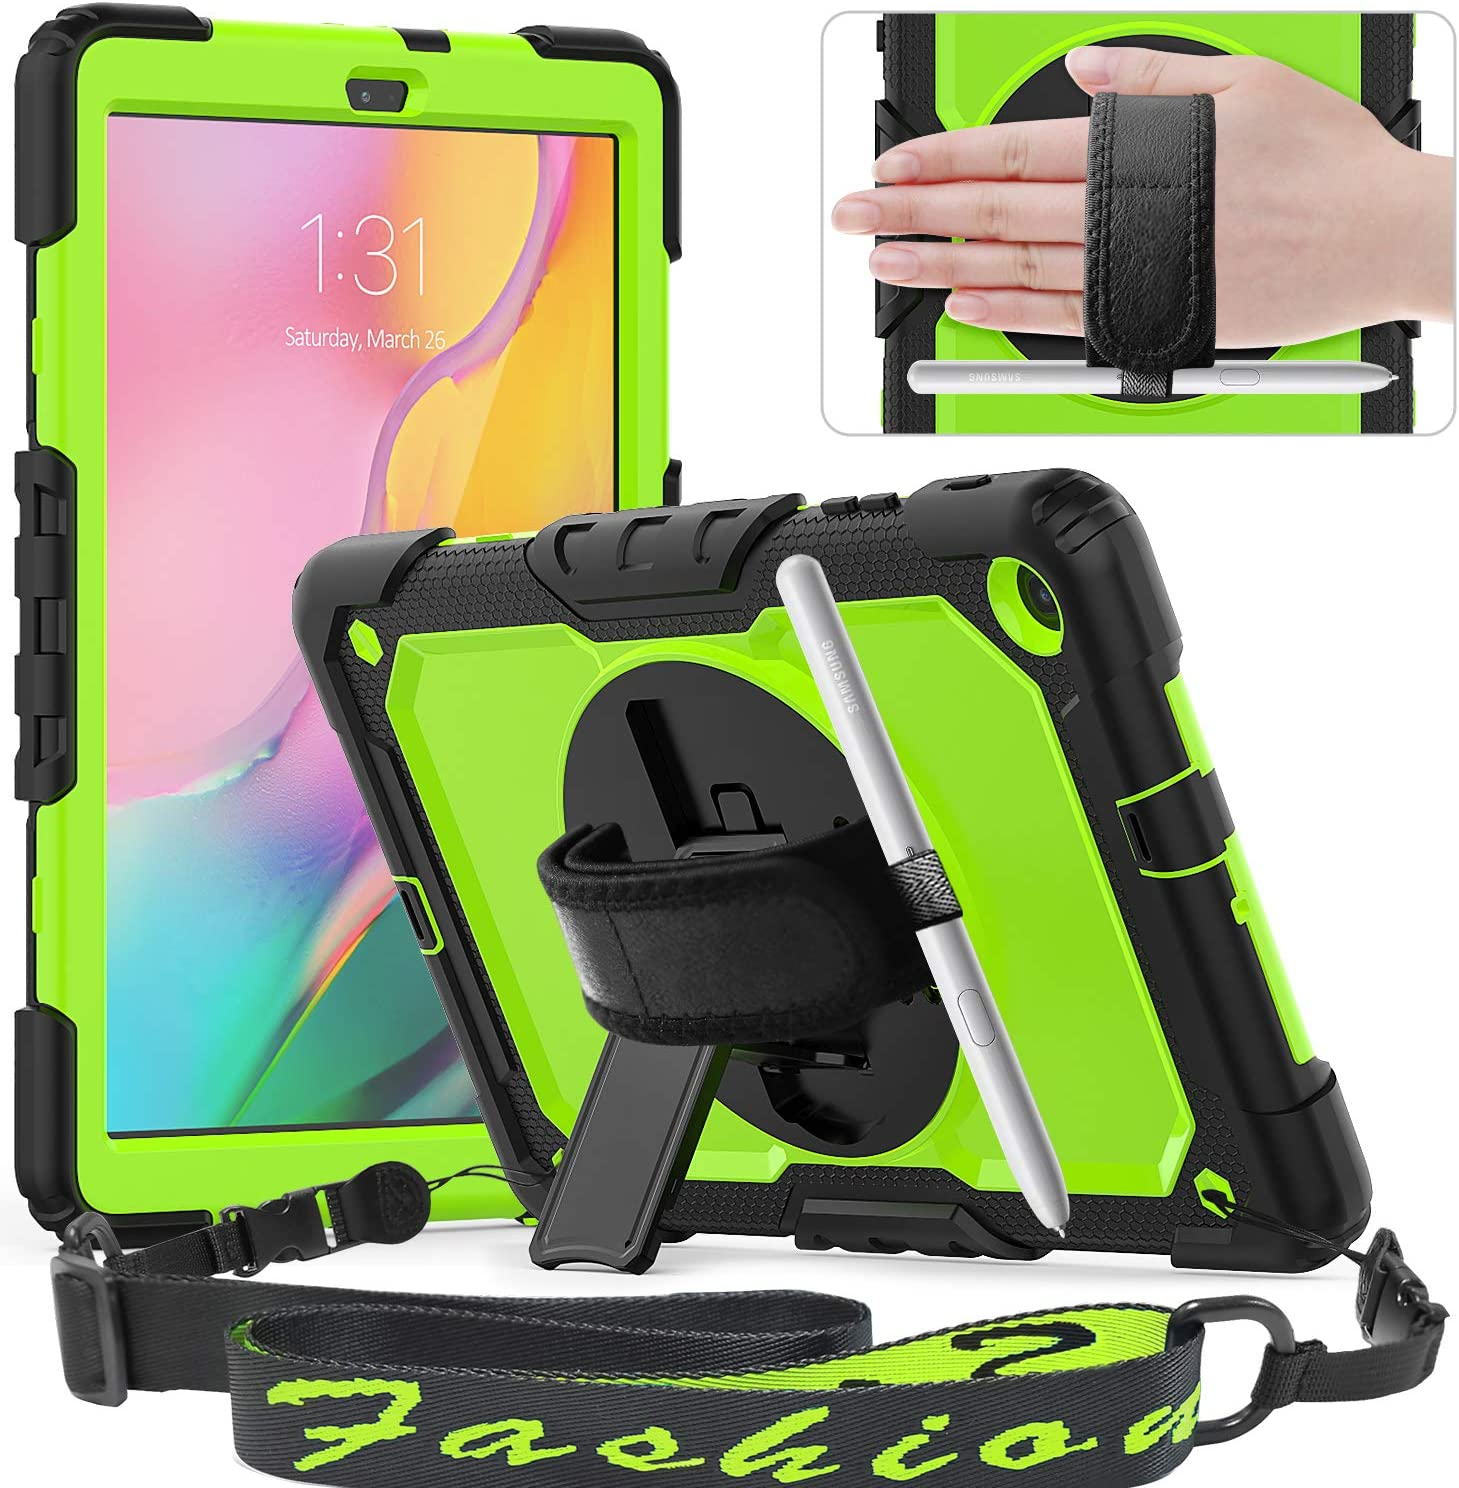 Timecity Galaxy Tab A 10.1 Case, SM-T510/T515/T517 2019 Release Case, Full-Body Drop Proof Hybrid Armor Case with Rotating Stand Screen Protector Hand Strap for Galaxy Tab A 10.1-Green+Black